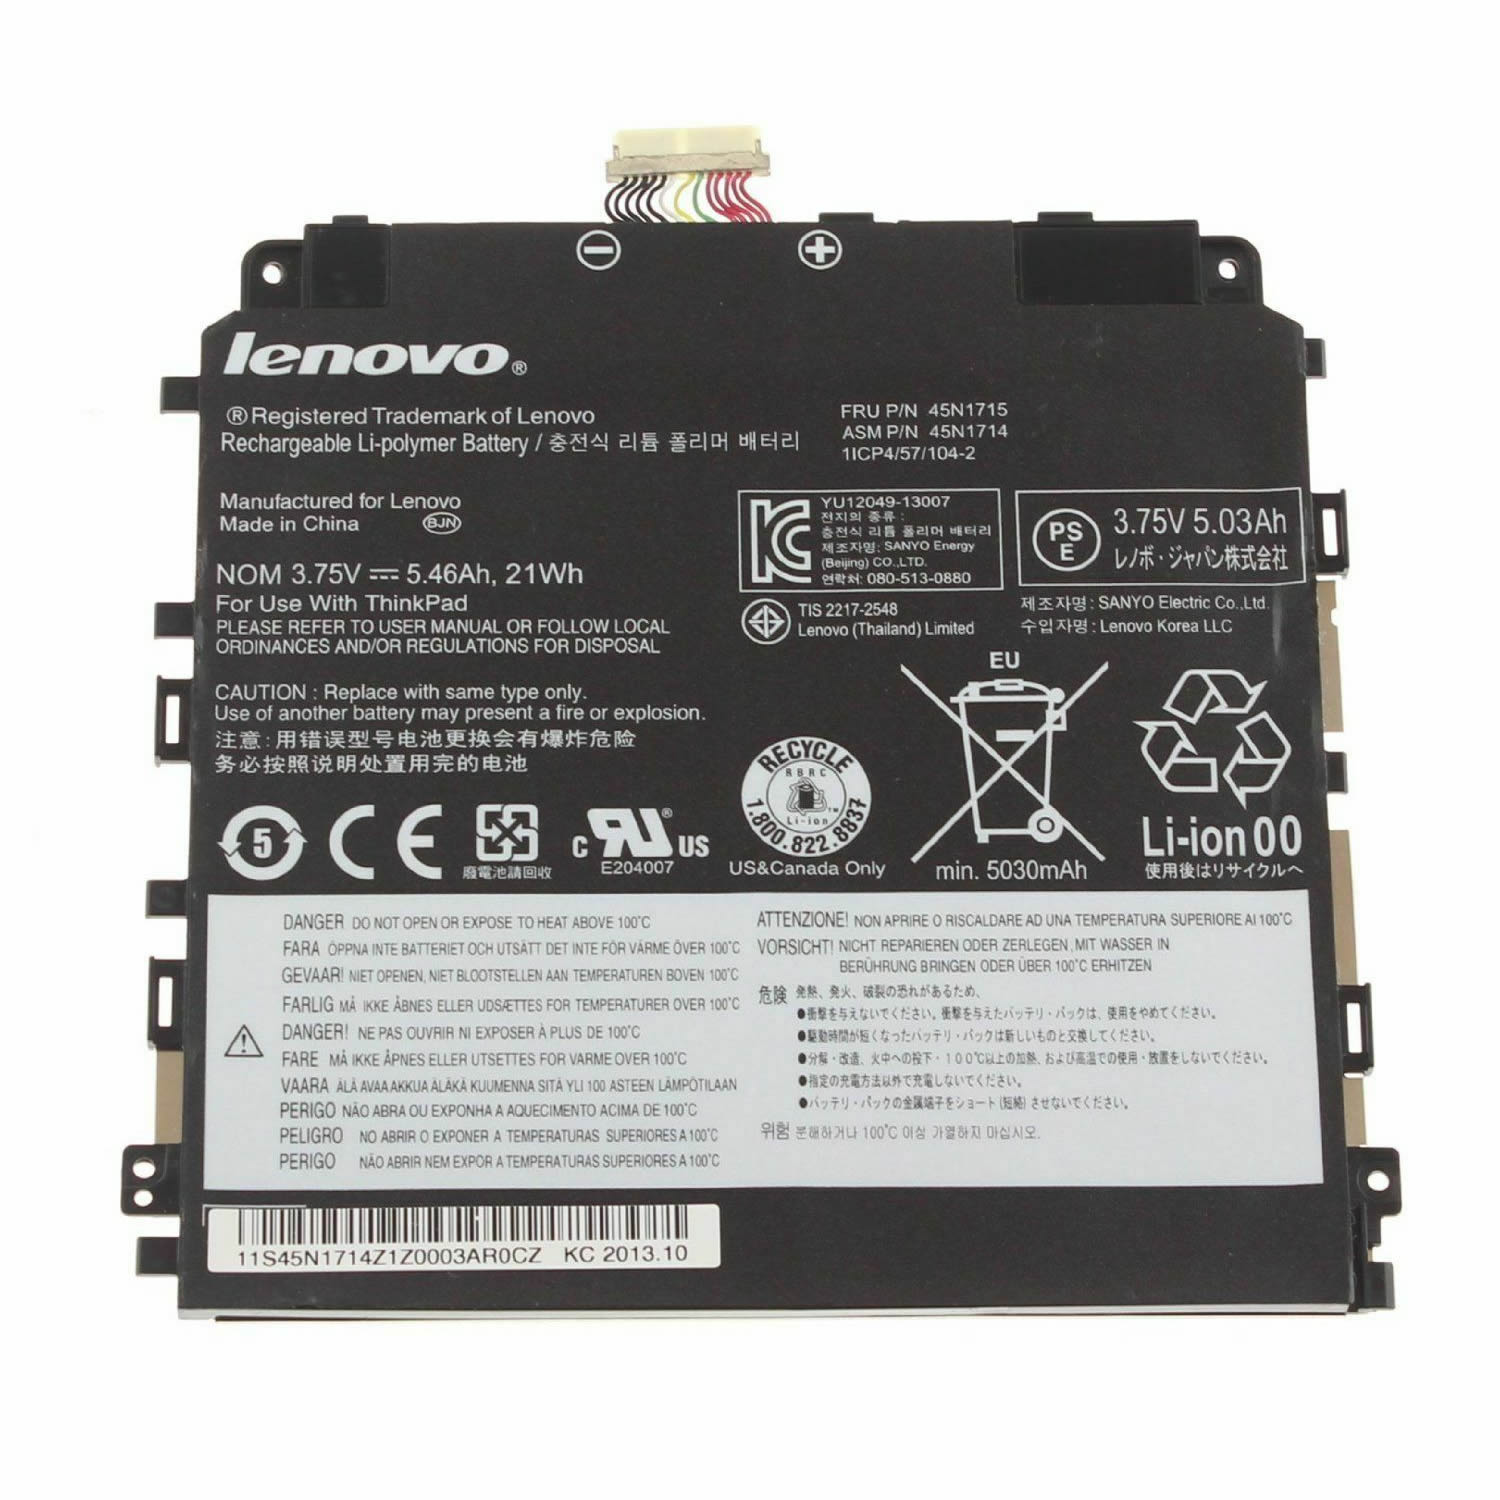 Lenovo 45N1714 45N1717 45N1718 batterie originale 3.75V 5460mAh, 21Wh pour ordinateur portable Lenovo Thinkpad 8 séries